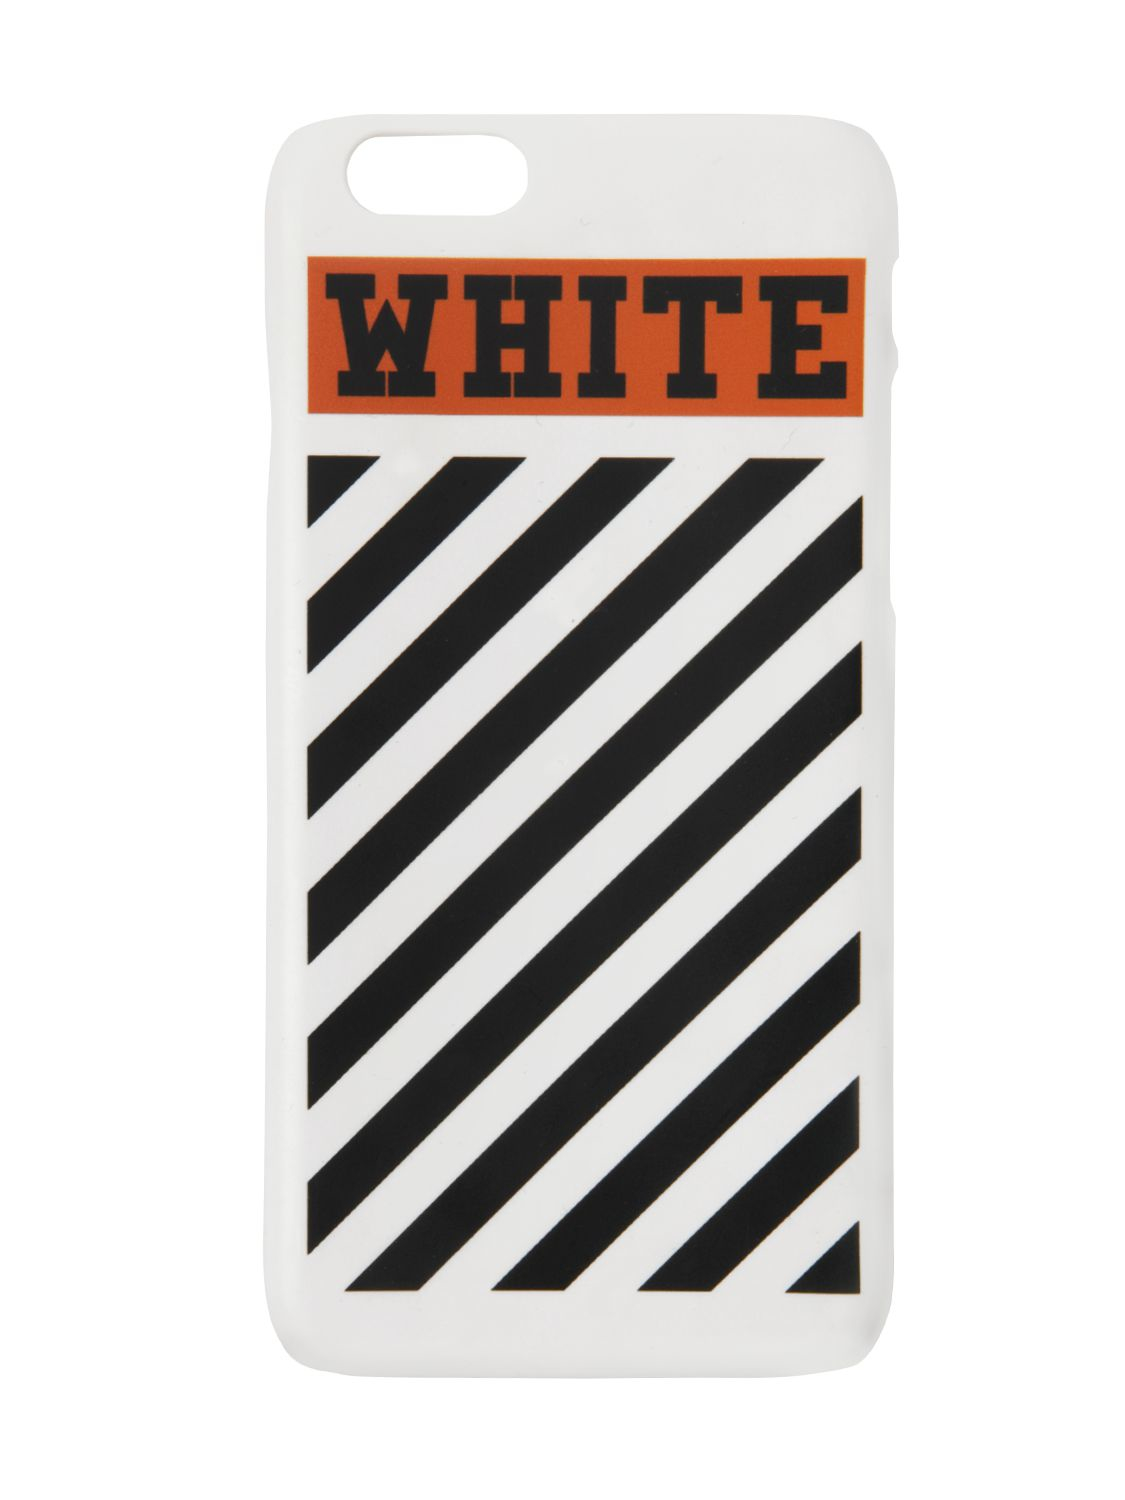 best loved 9783a 1ef0e Off-White c/o Virgil Abloh White Striped iPhone 6 Case